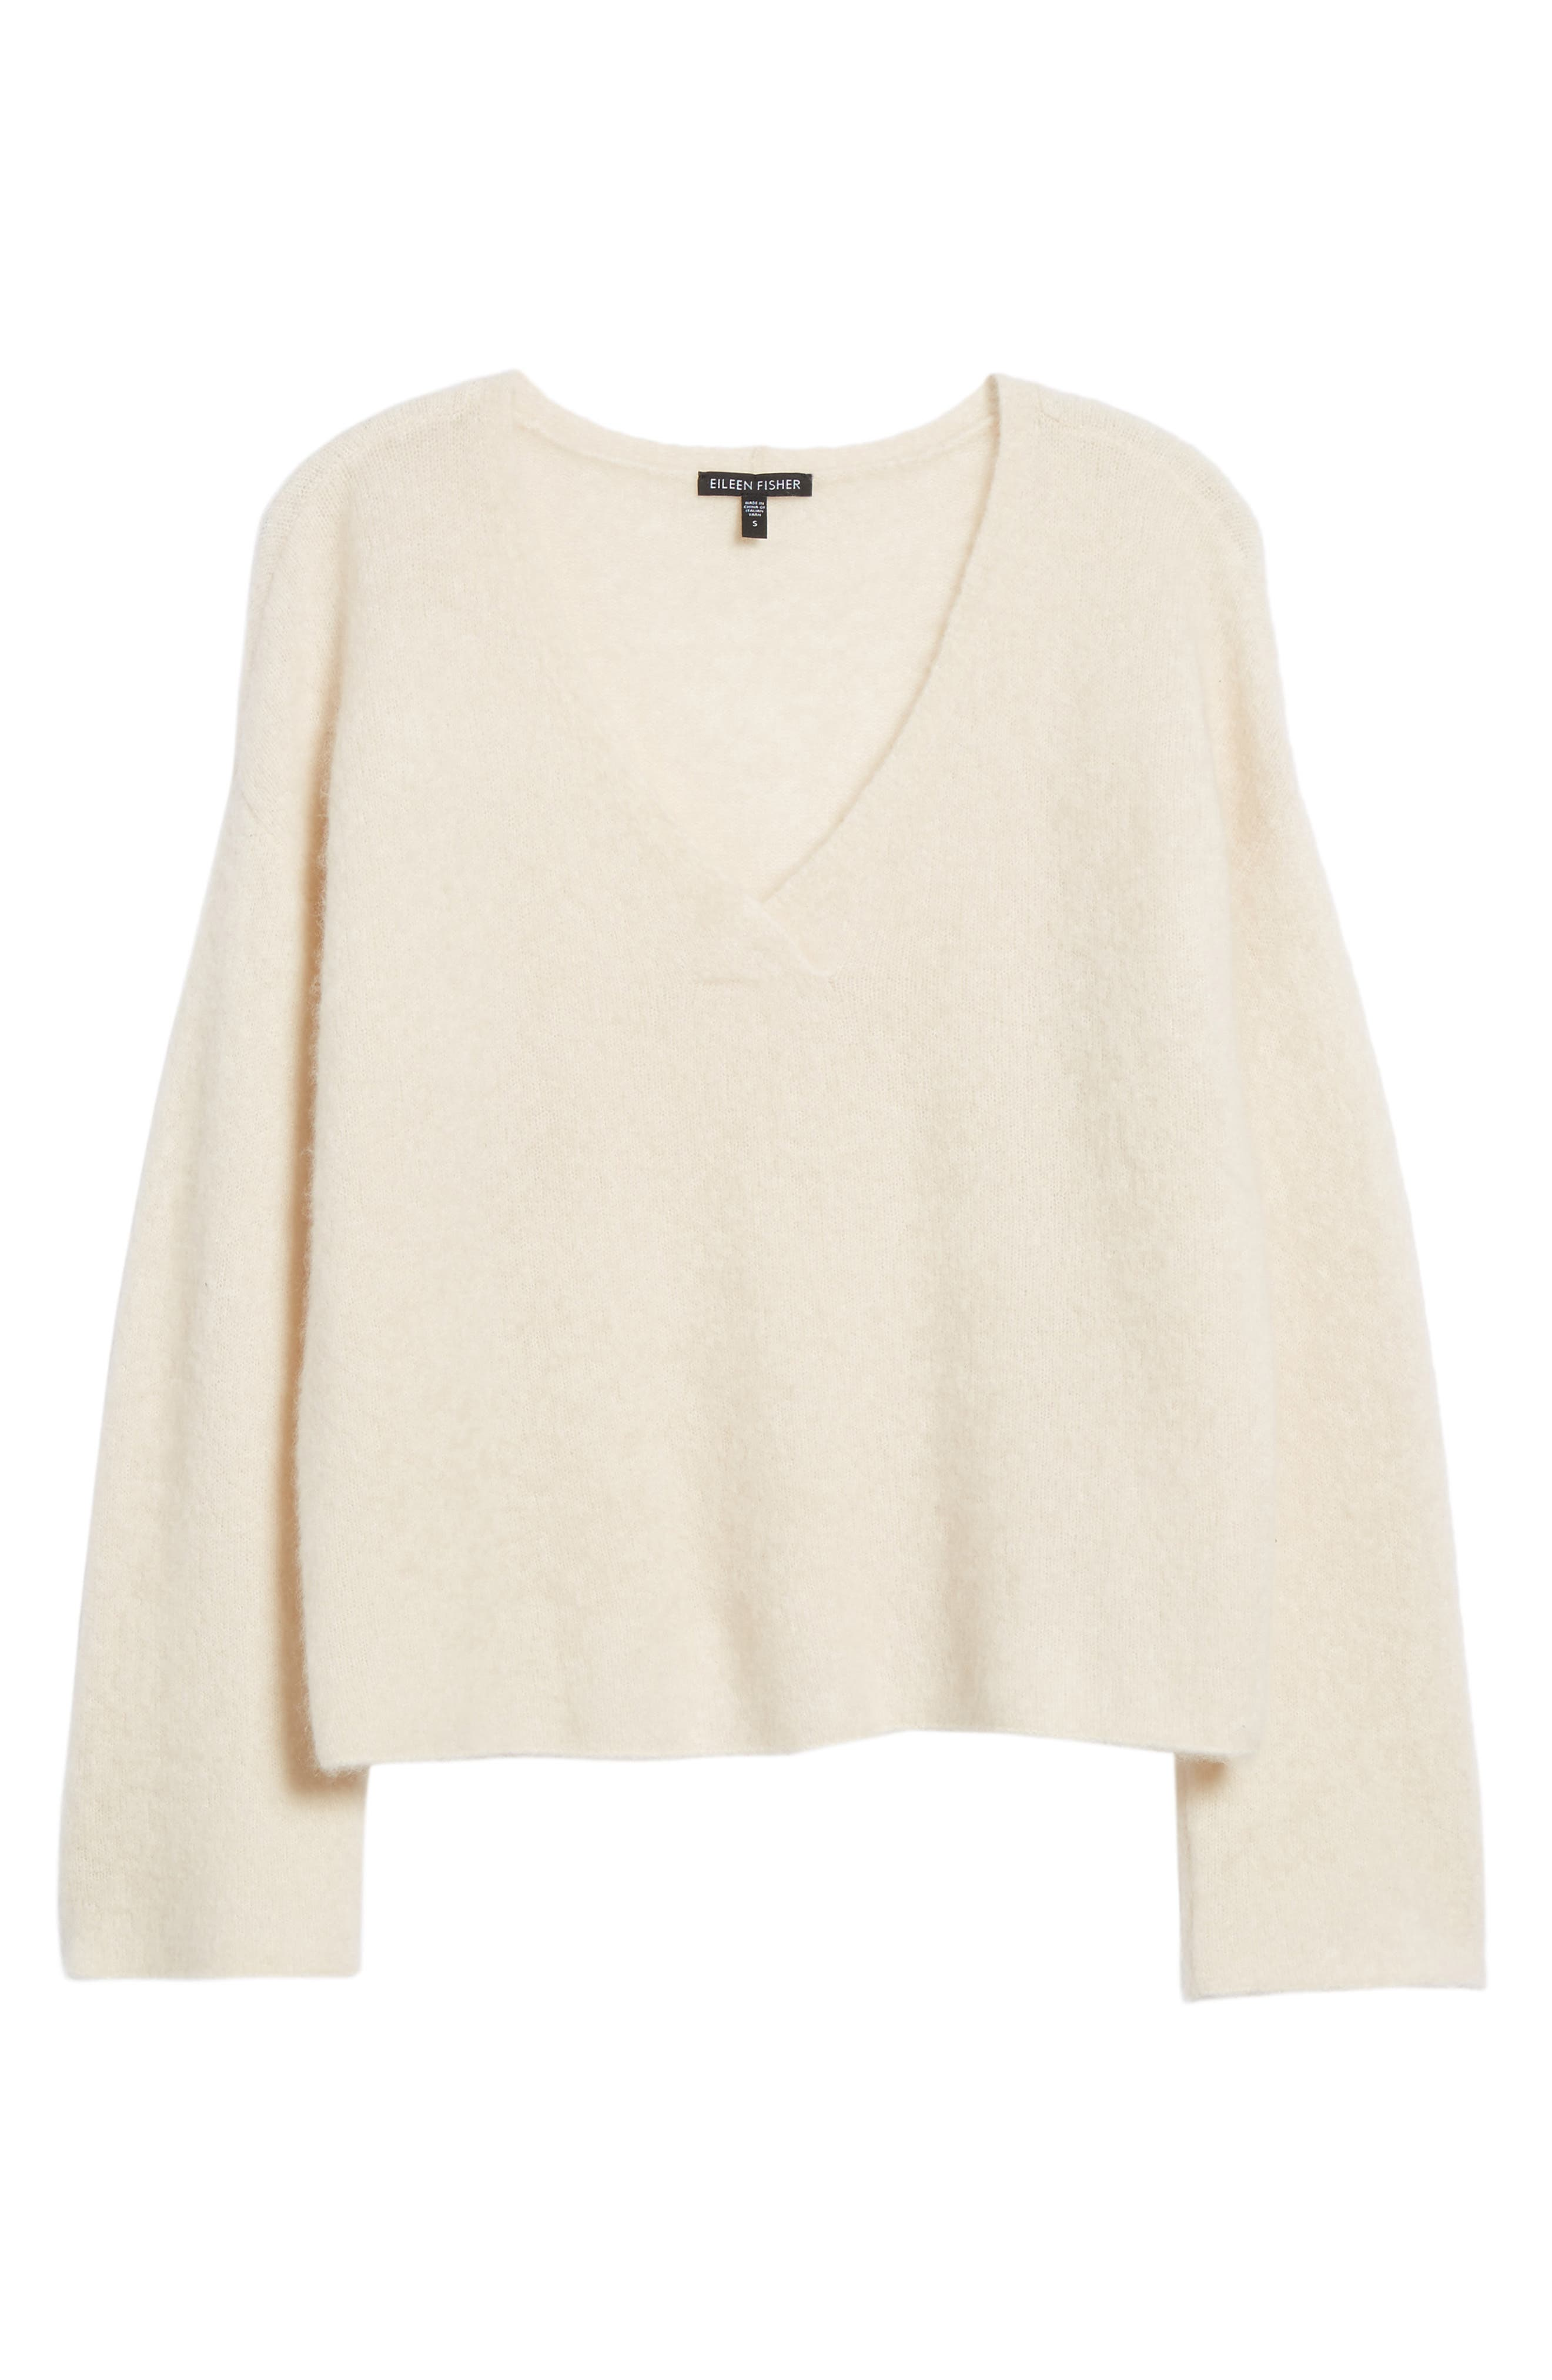 Boxy Cashmere Blend Sweater,                             Alternate thumbnail 6, color,                             103